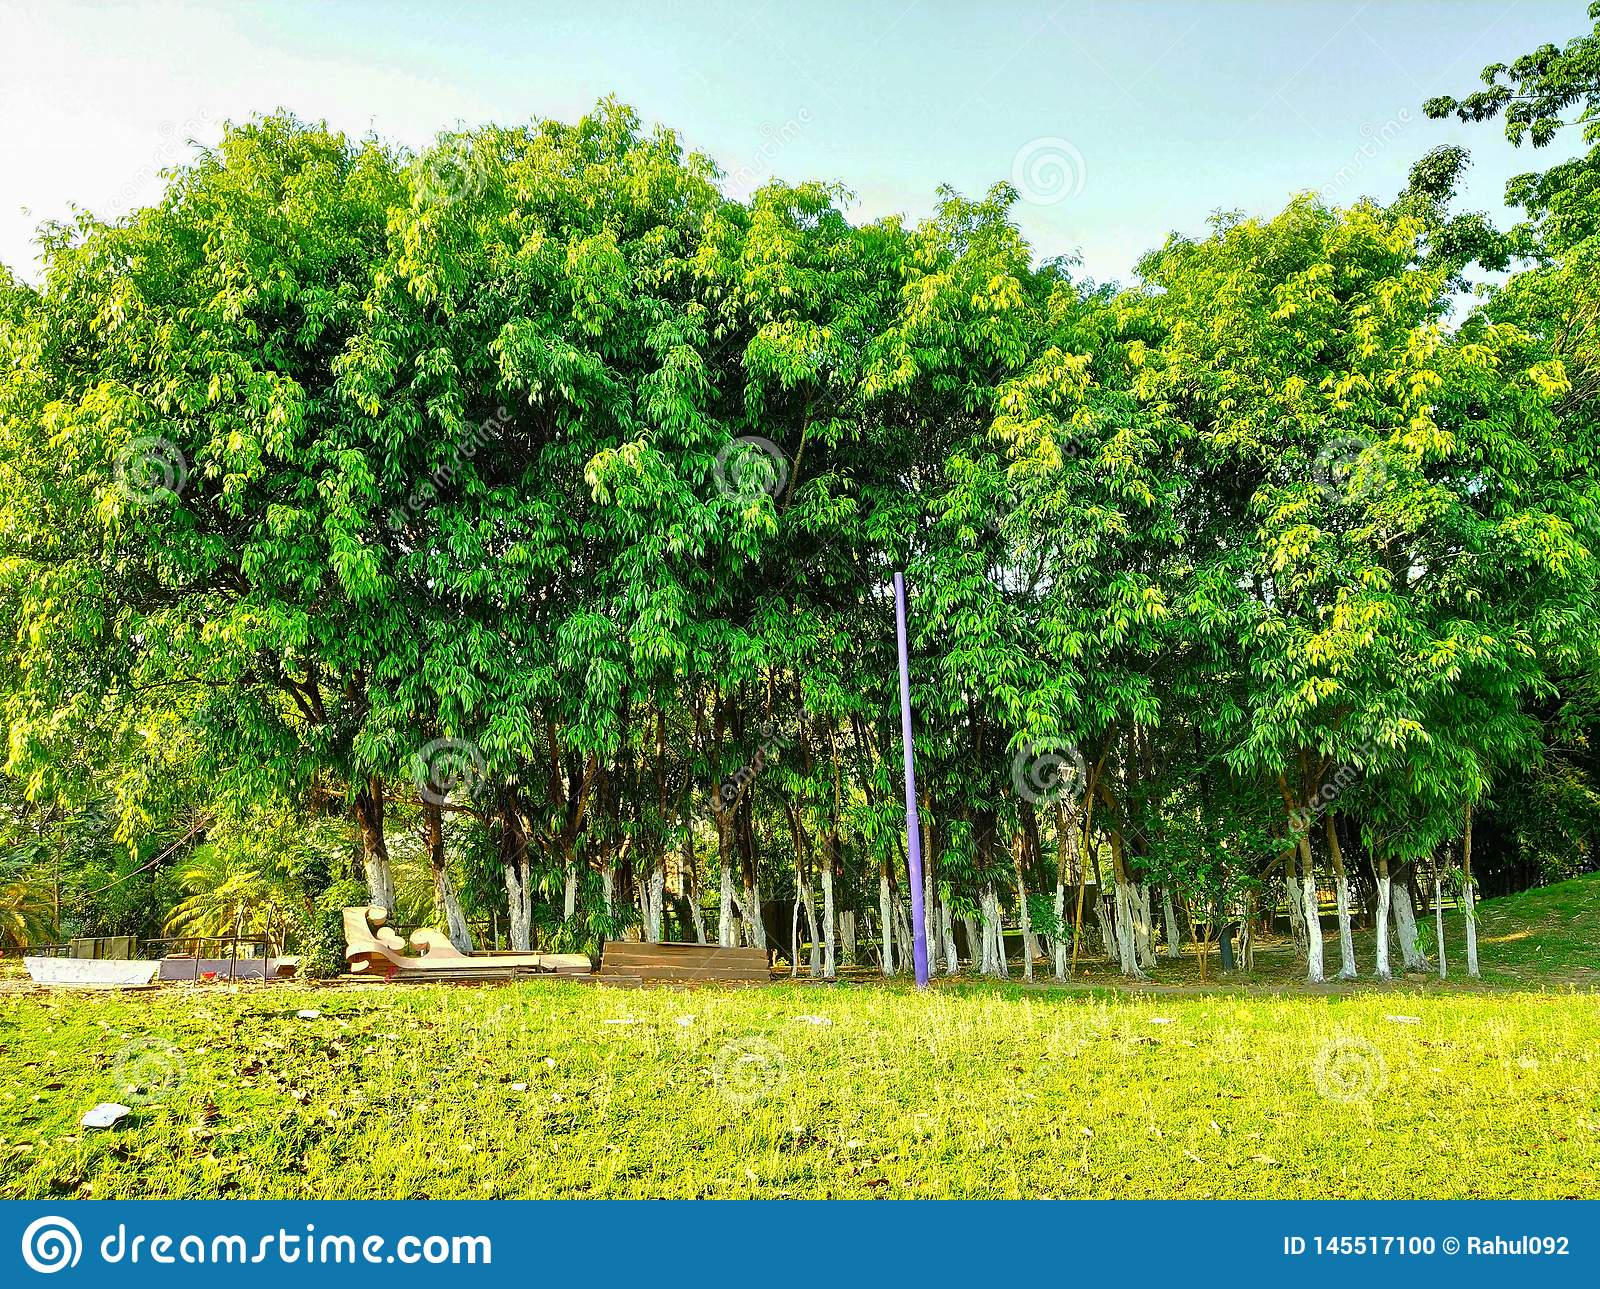 Small forest in garden looks so beautiful and green and blu sky background was magical so beautiful seen